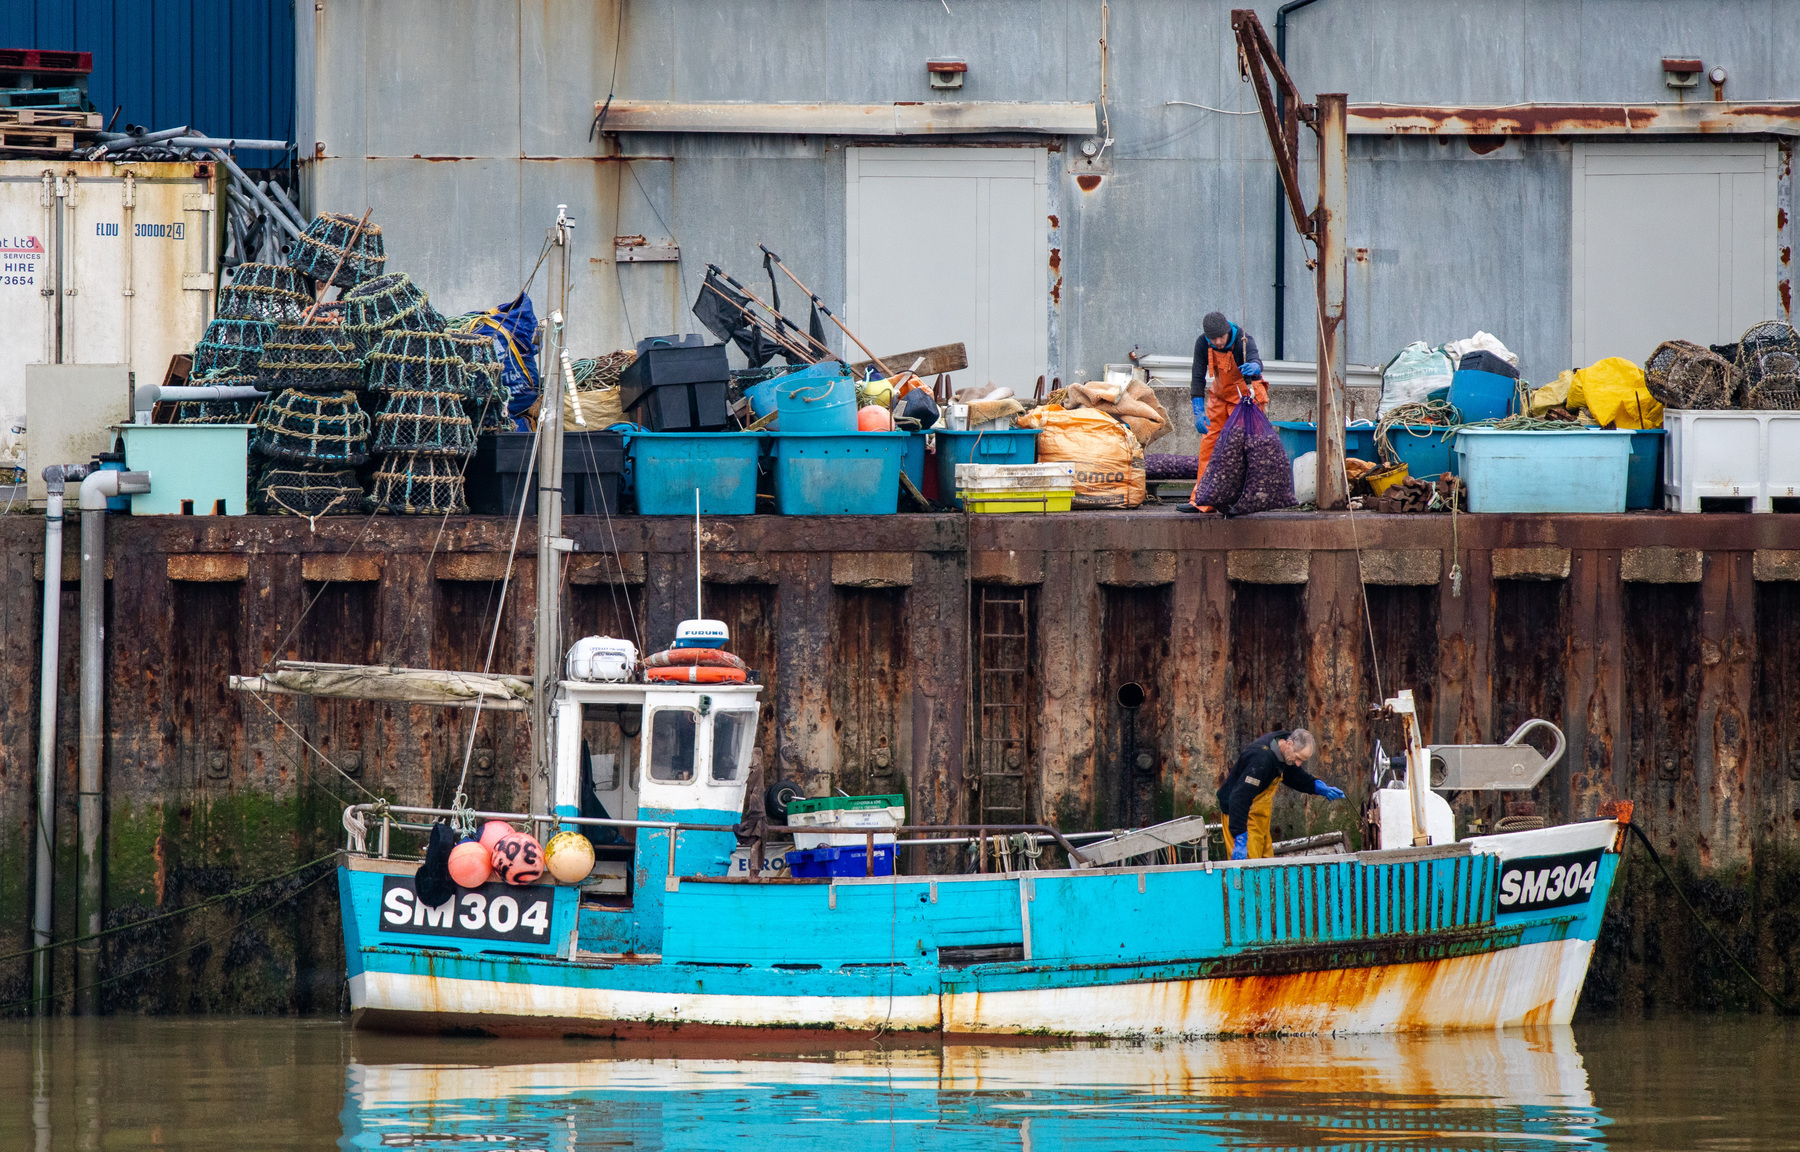 A fishing boat in the Adur bringing in a catch.